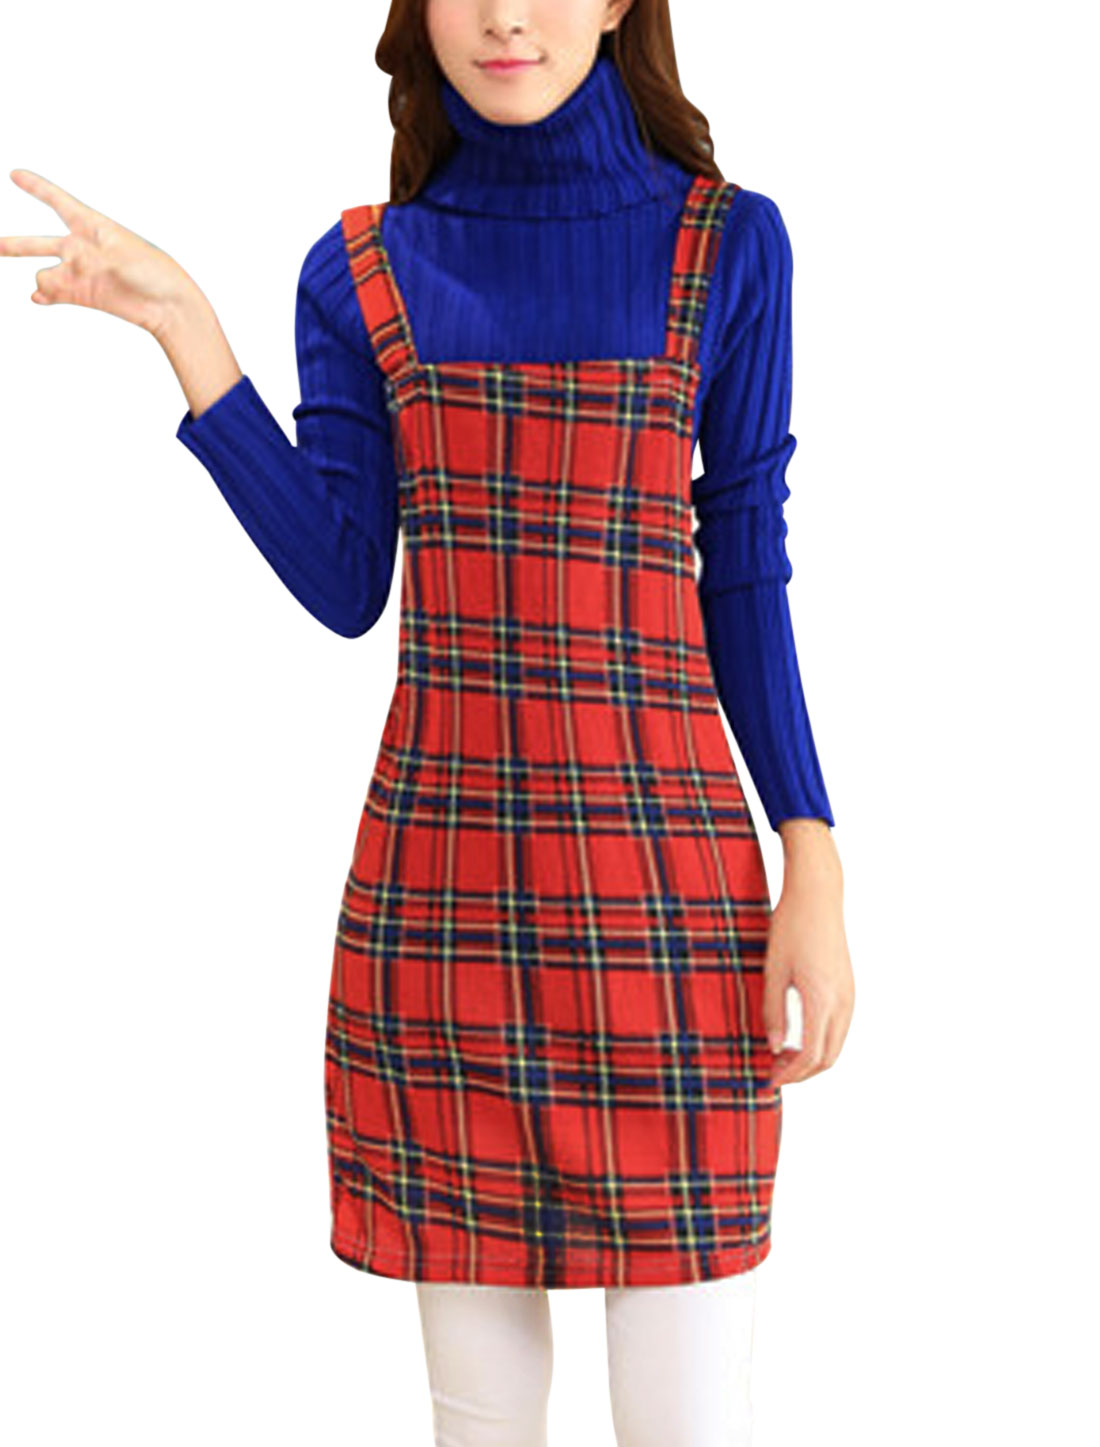 Women Shoulder Straps Check Plaids Print Straight Knit Suspender Dress Red M